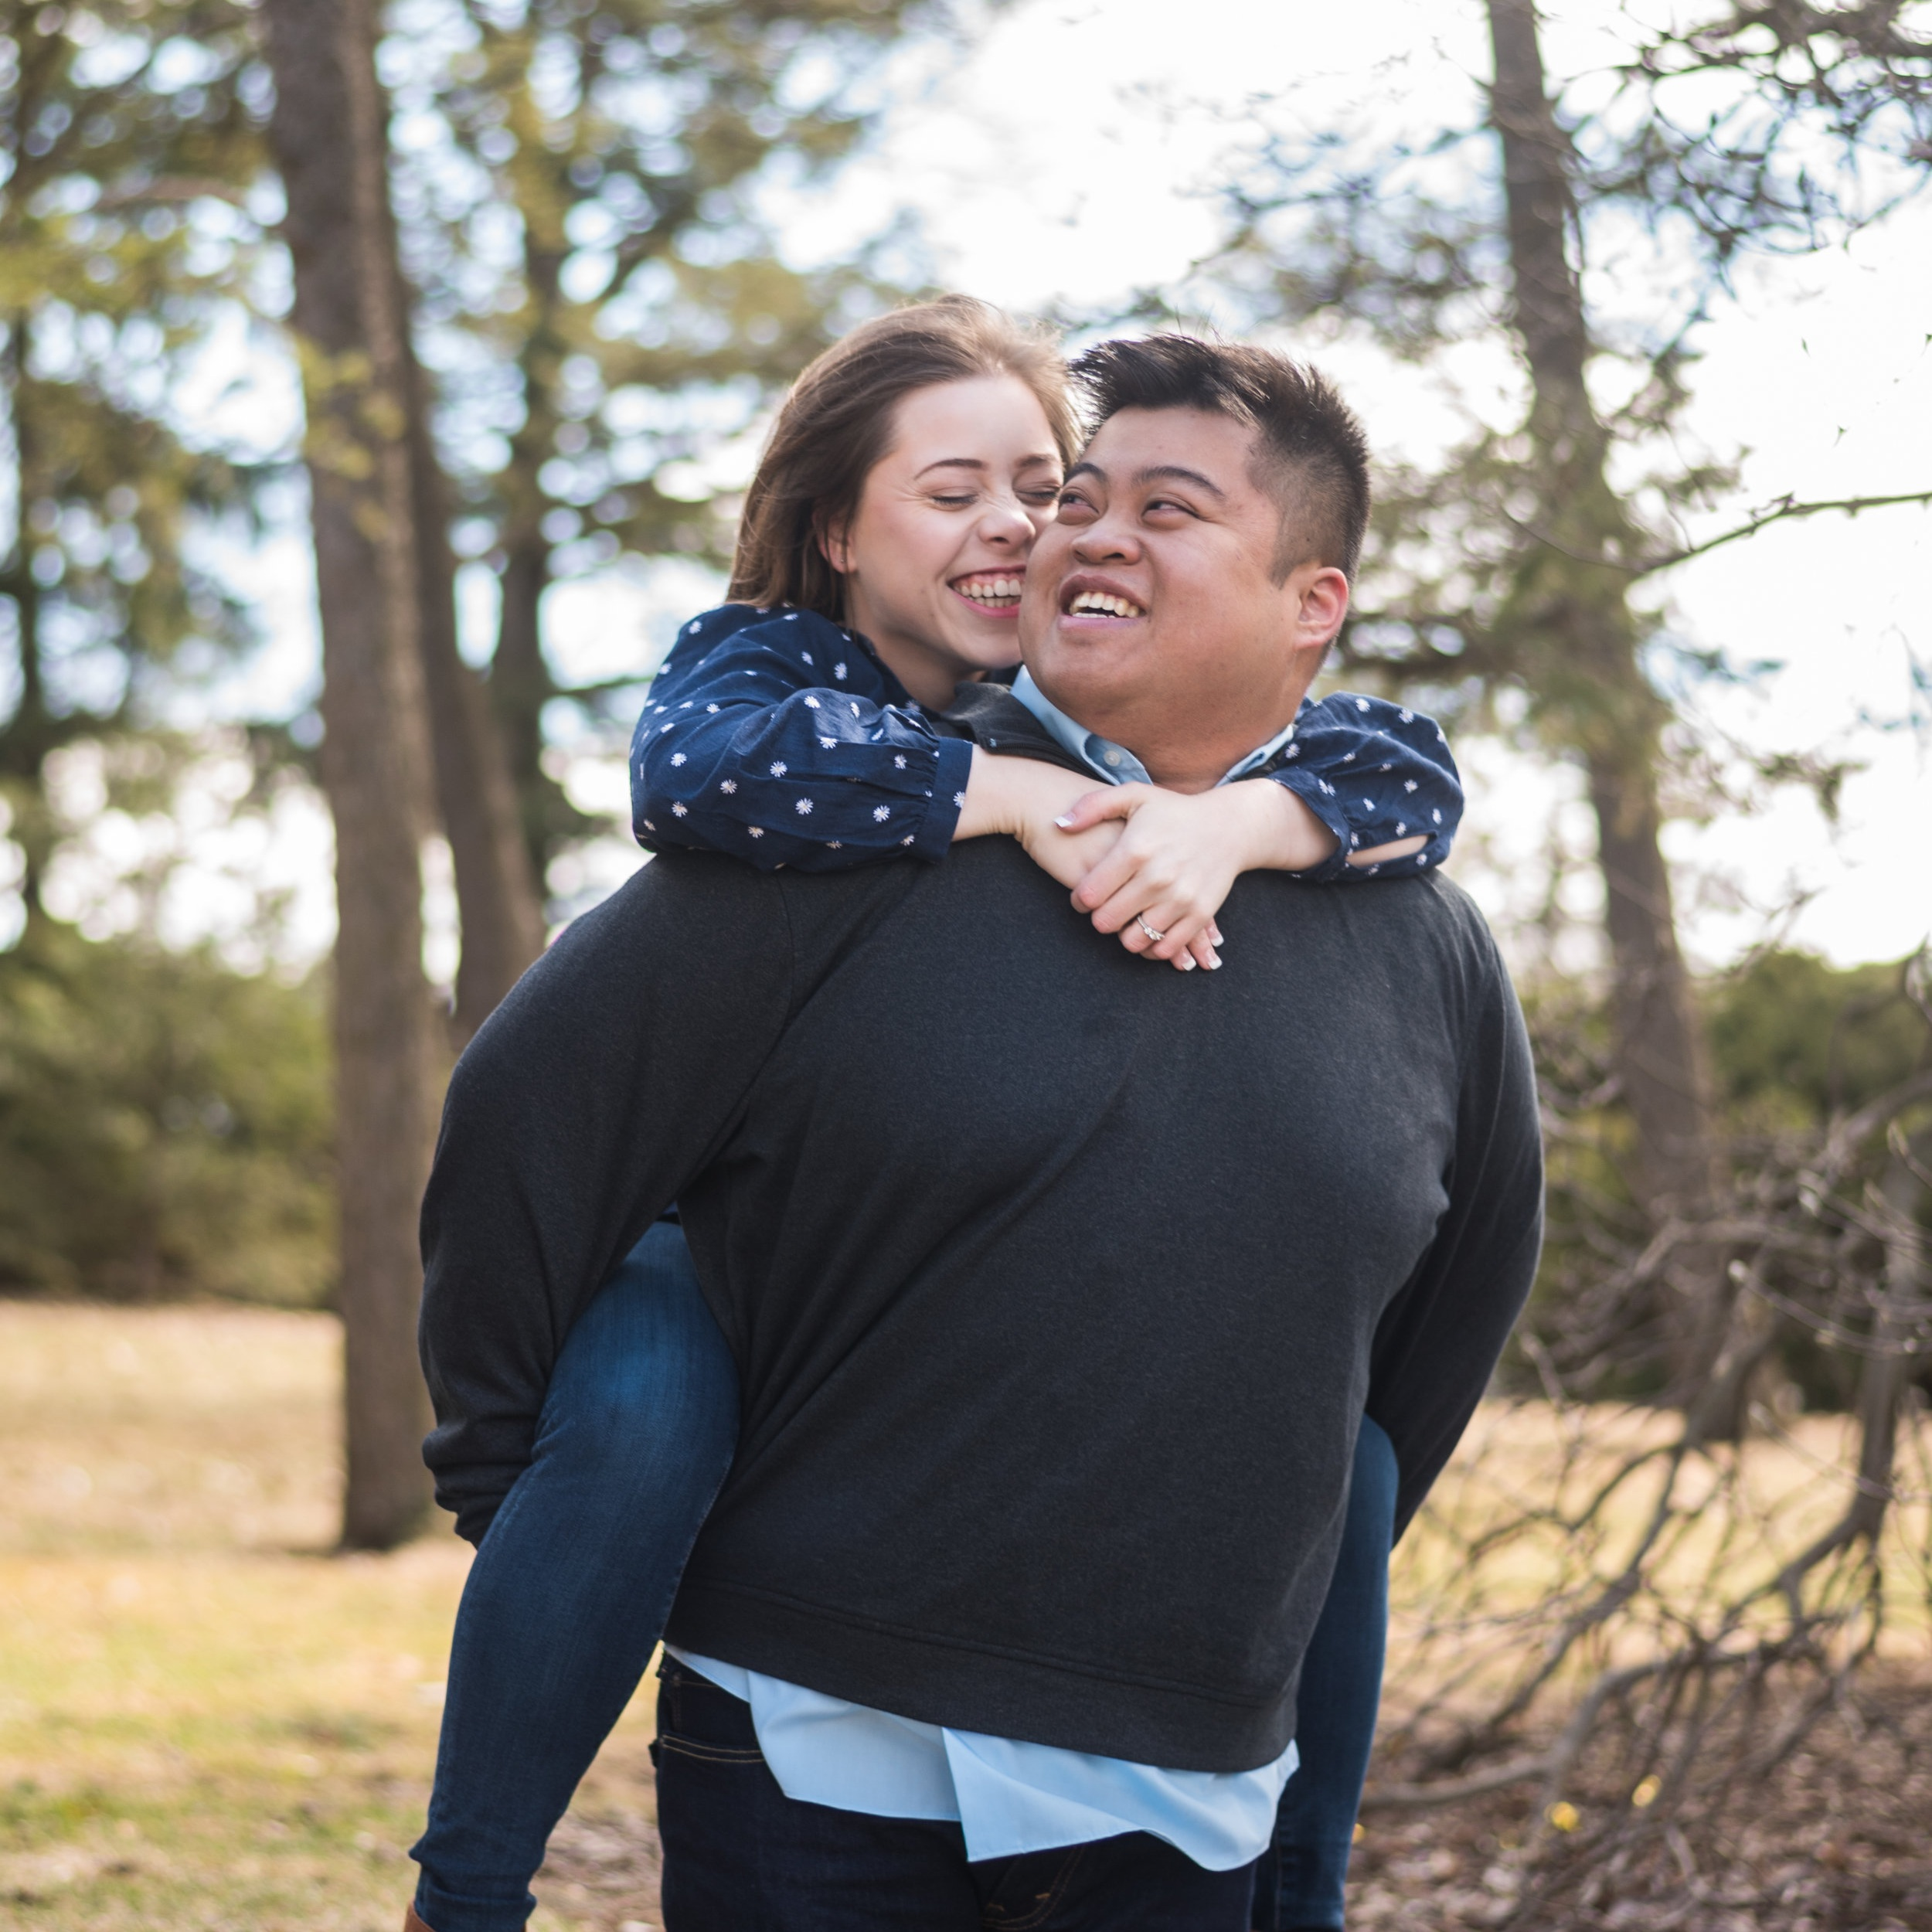 Kevin + Liz Engagement 3.31.19